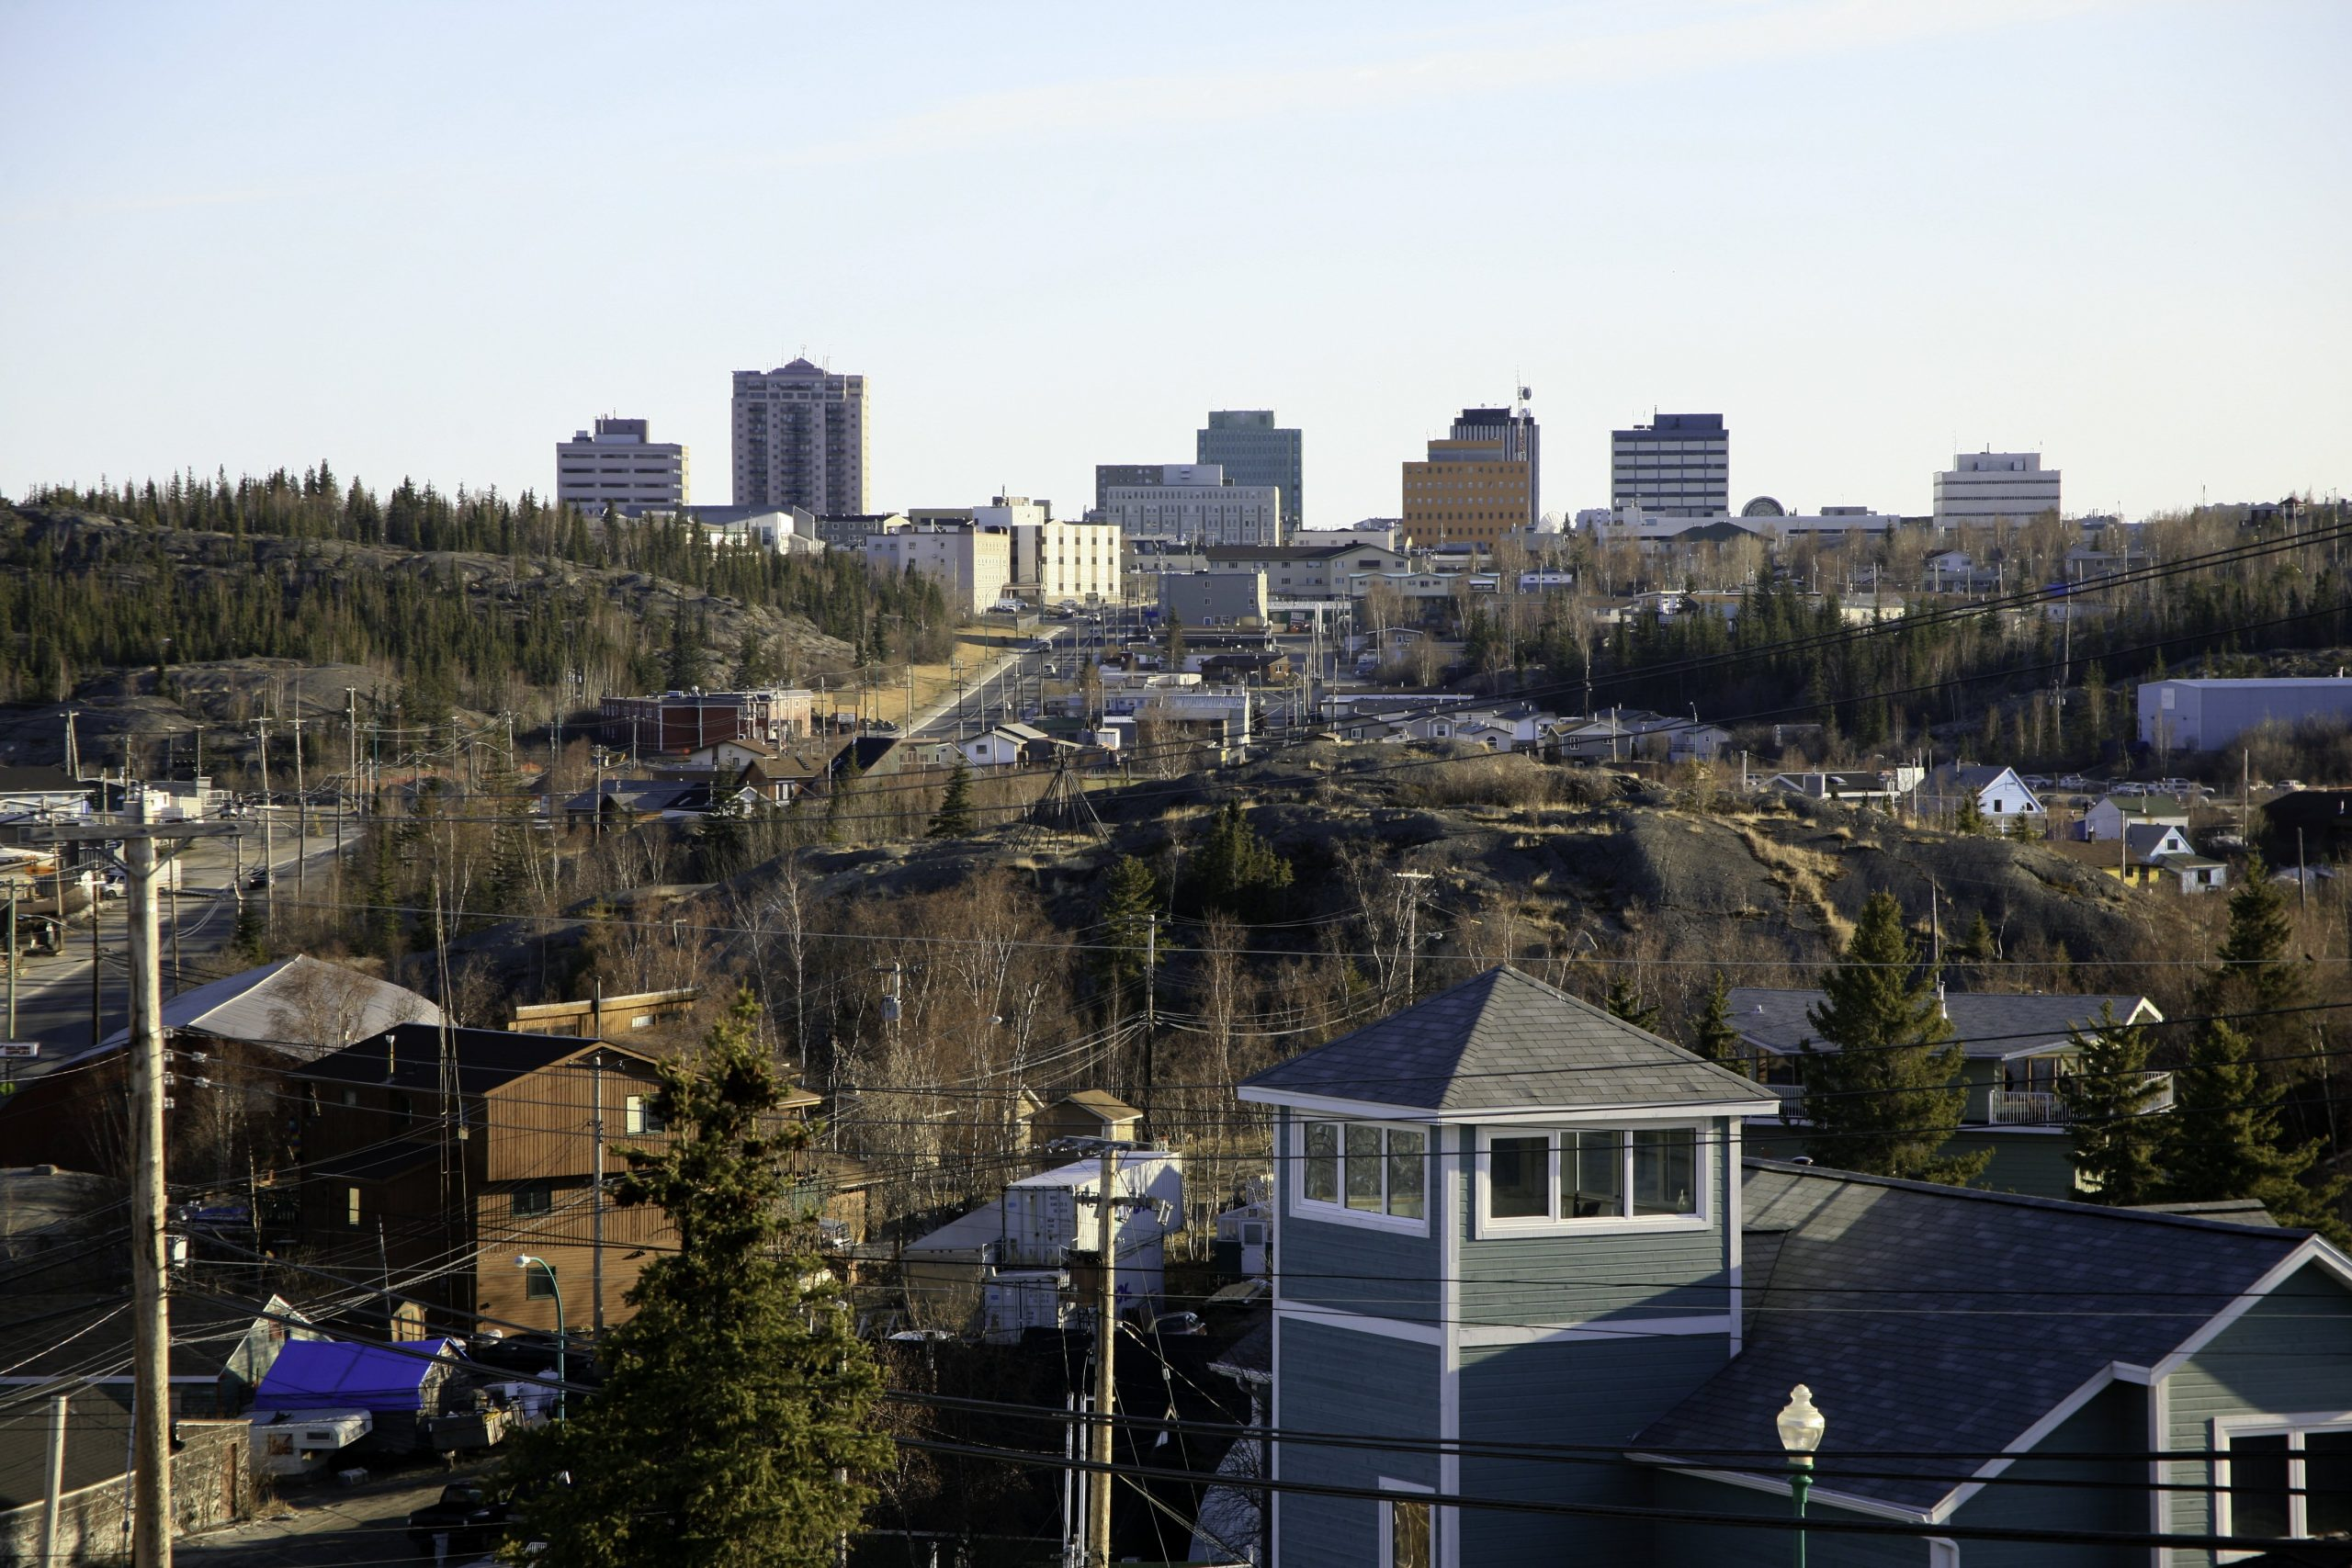 NORTHWEST TERRITORIES EXTENDING RENTAL ASSISTANCE PROGRAM